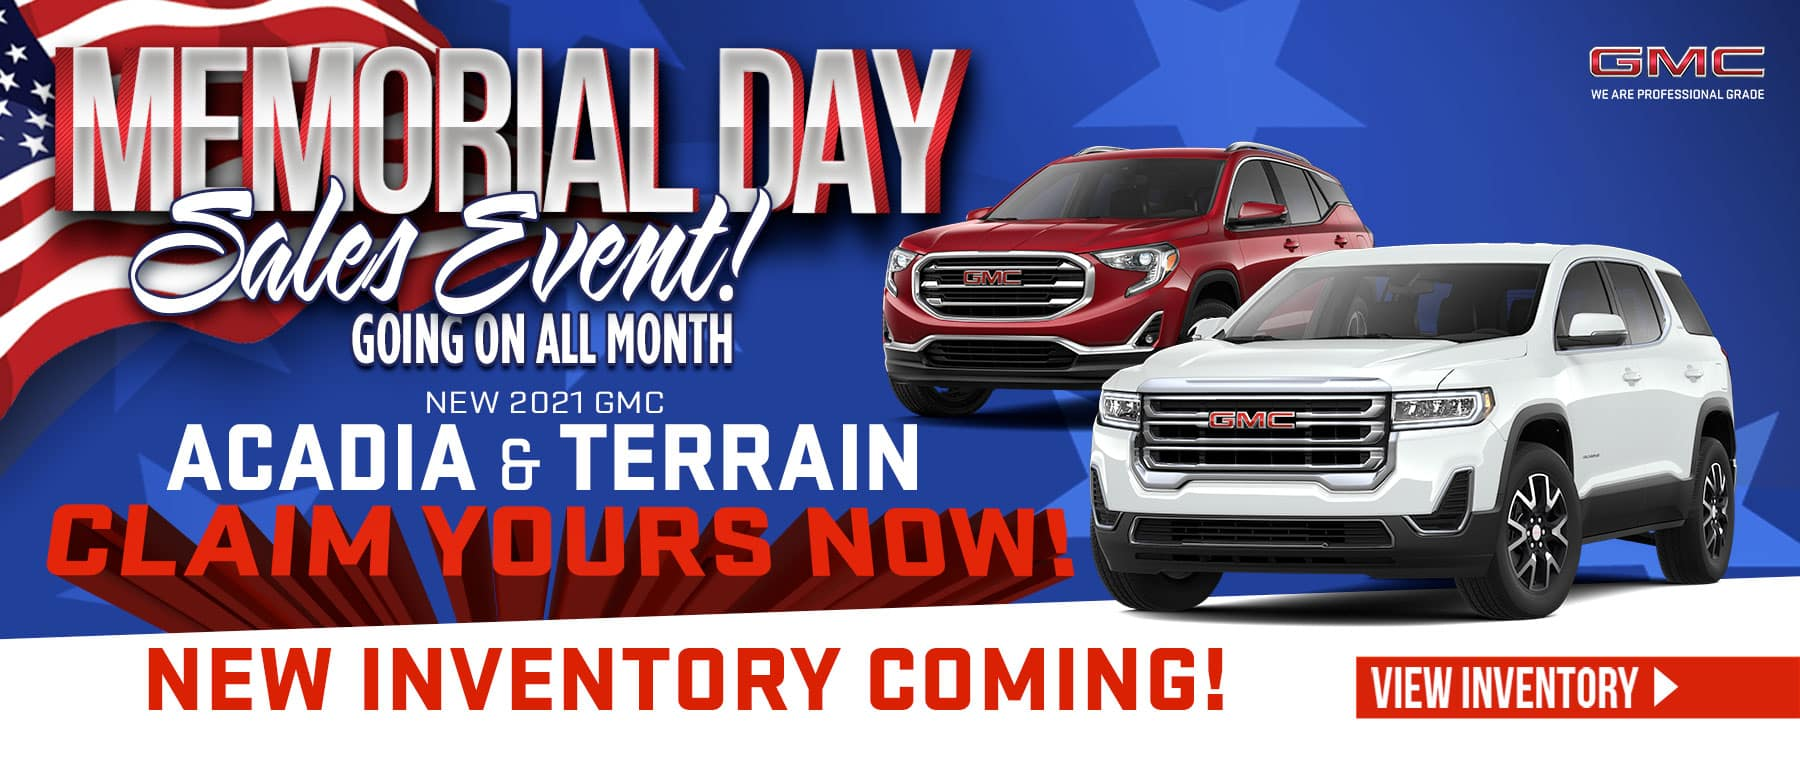 New 2021 GMC Acadia & Terrain - New Inventory Coming! Claim yours now!